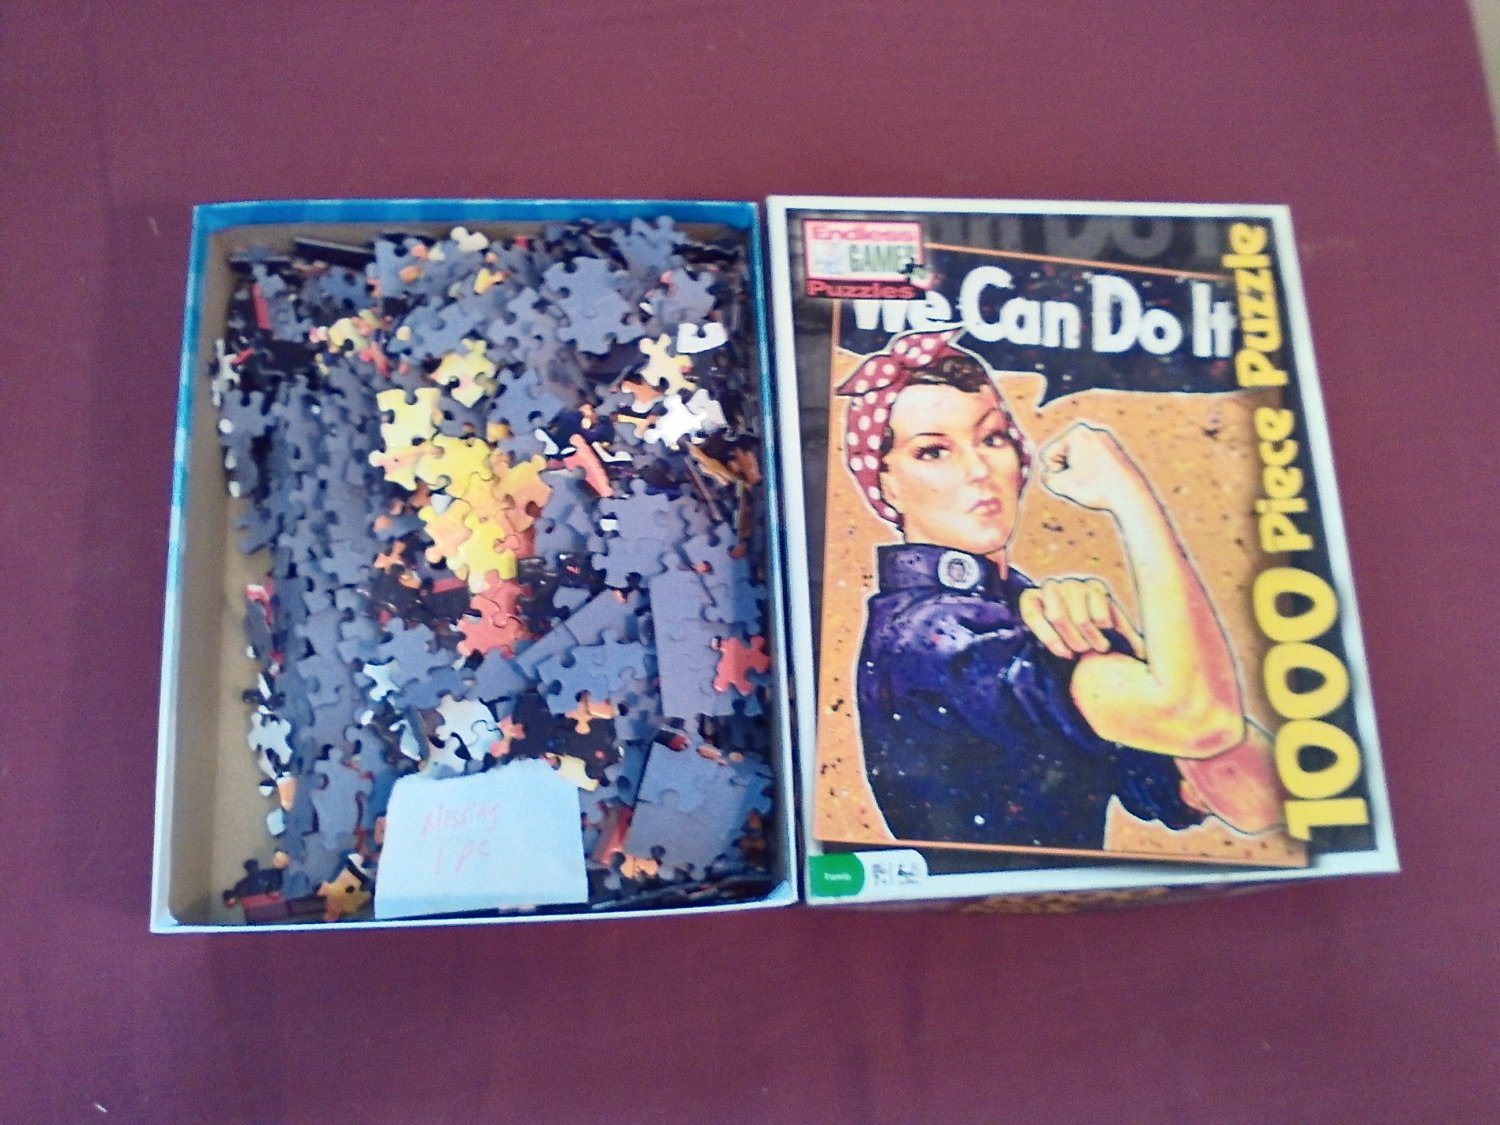 """We Can Do It Rosie the Riveter 1000 Piece Endless Games Jigsaw Puzzle 19"""" x 26""""  (mw) missing 1 pc"""